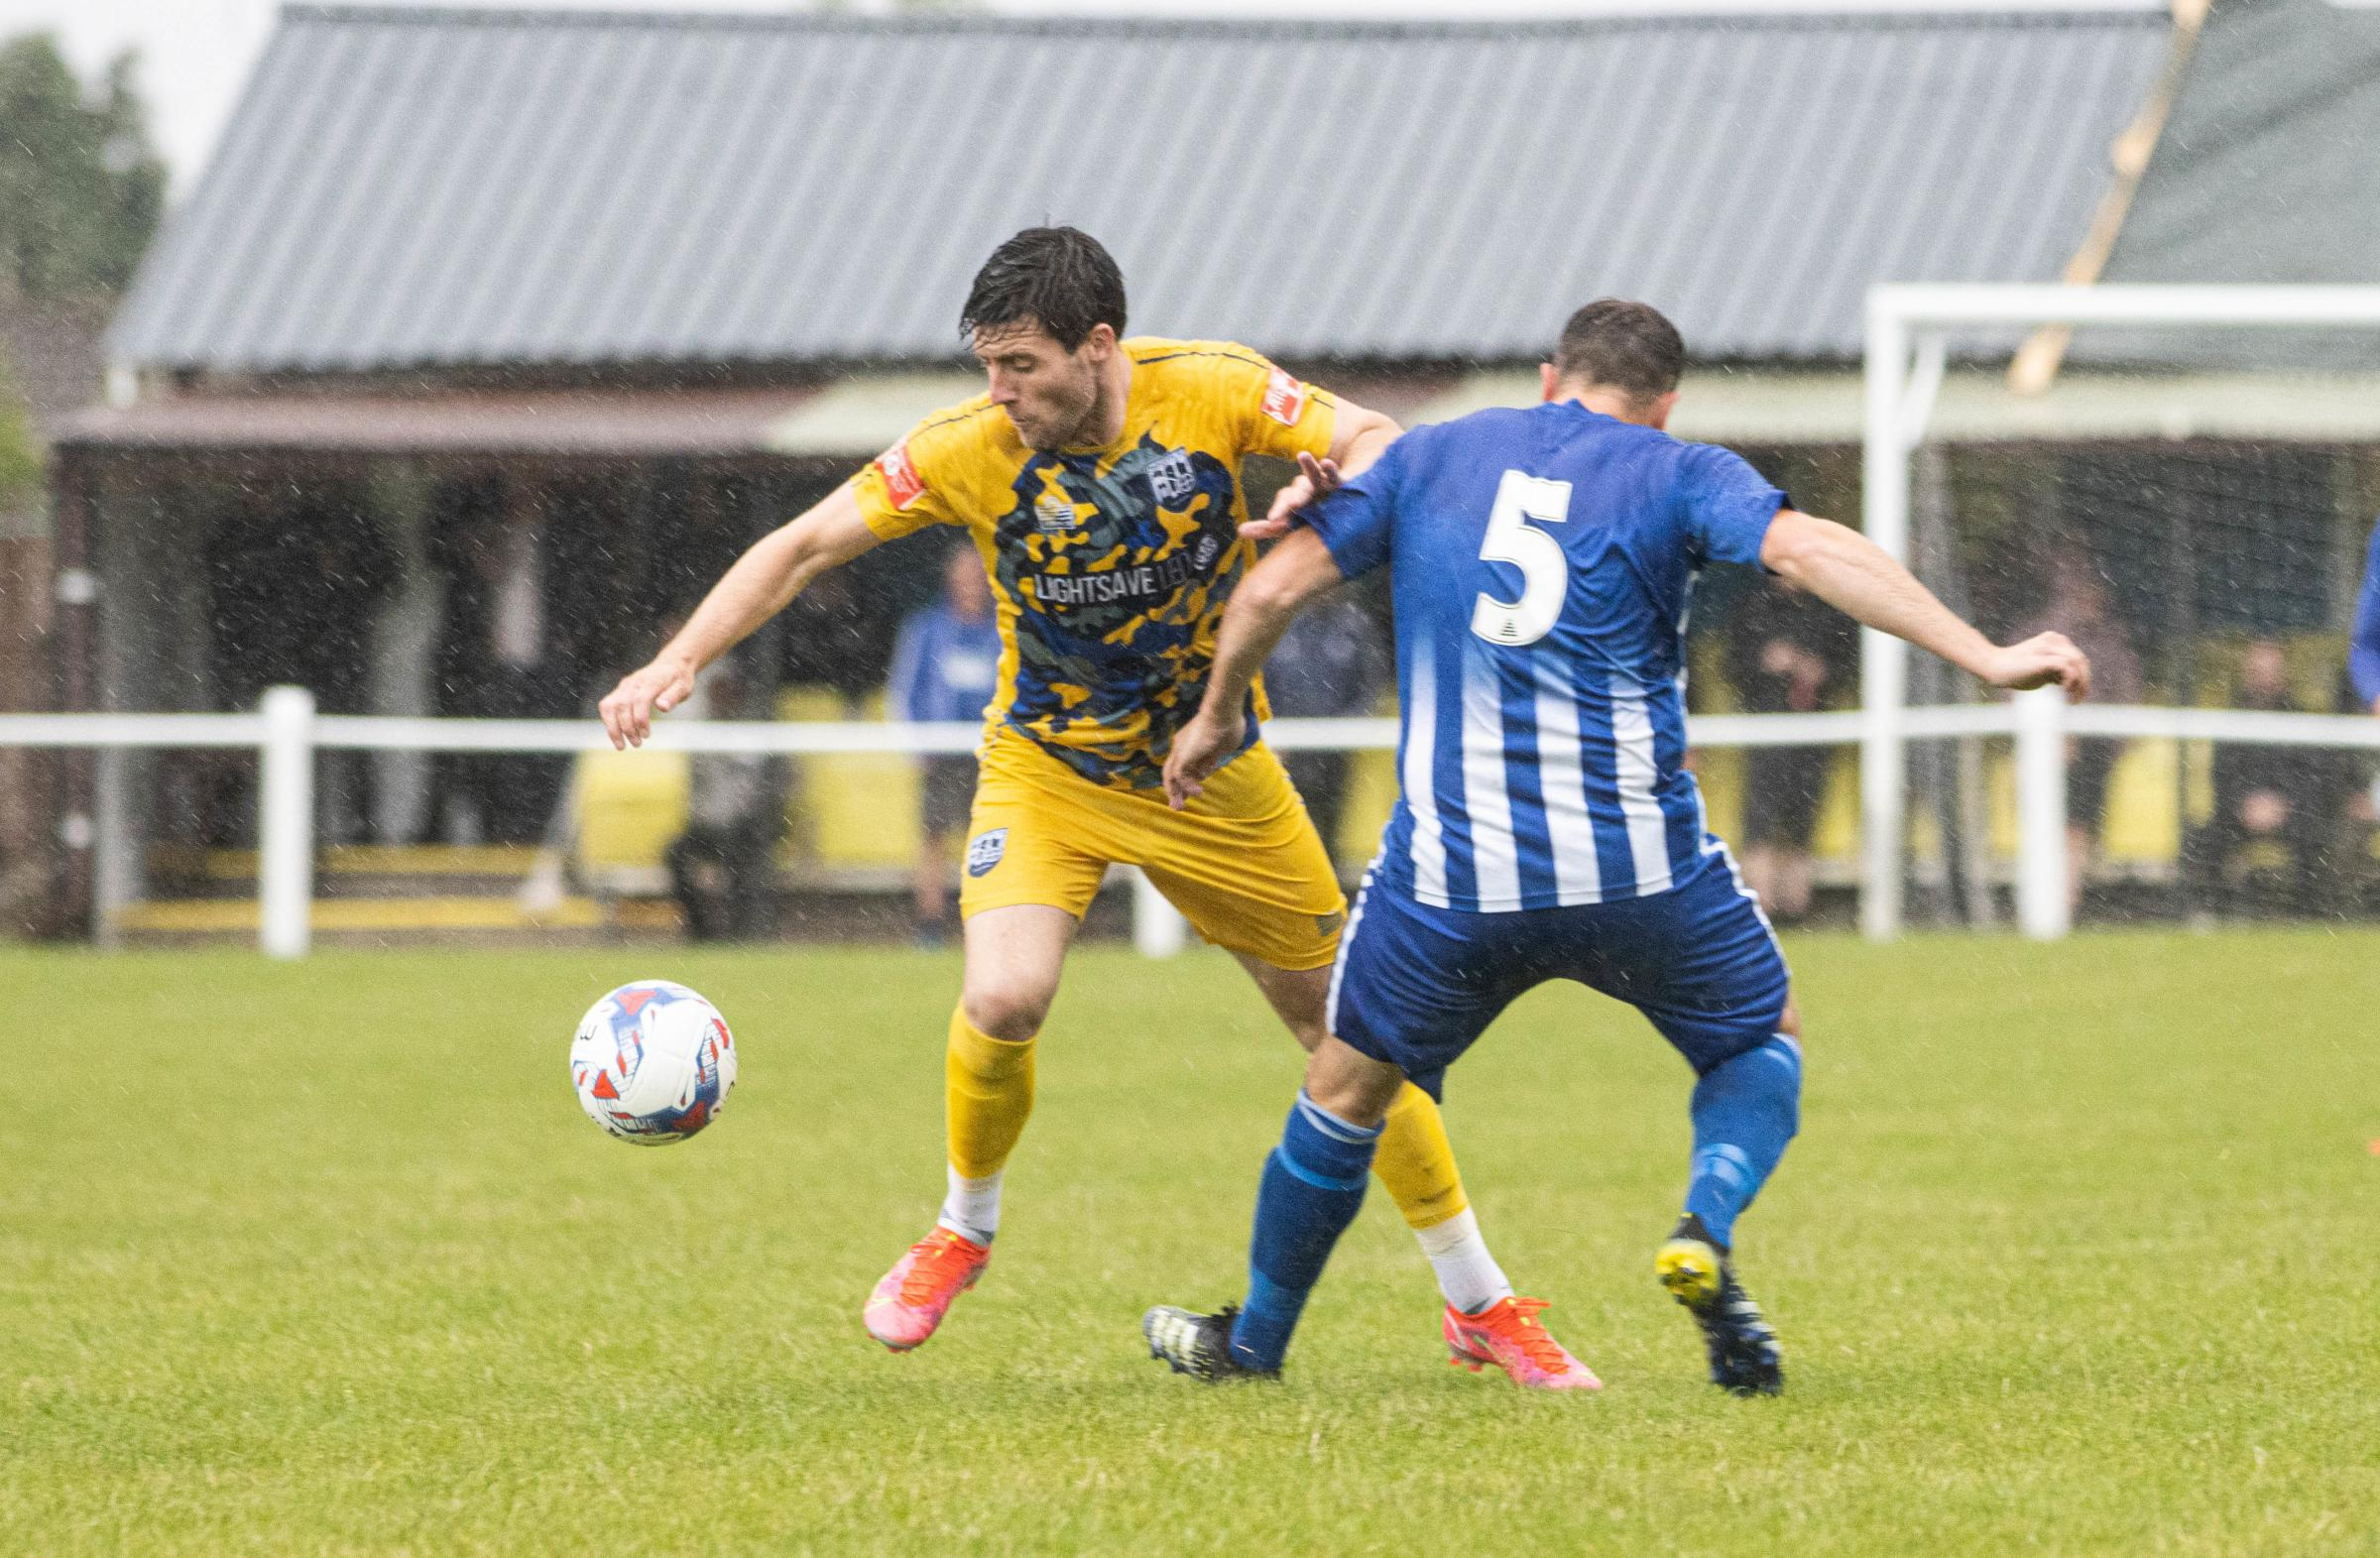 New signing Bobby Grant has two goals in two games for Radcliffe